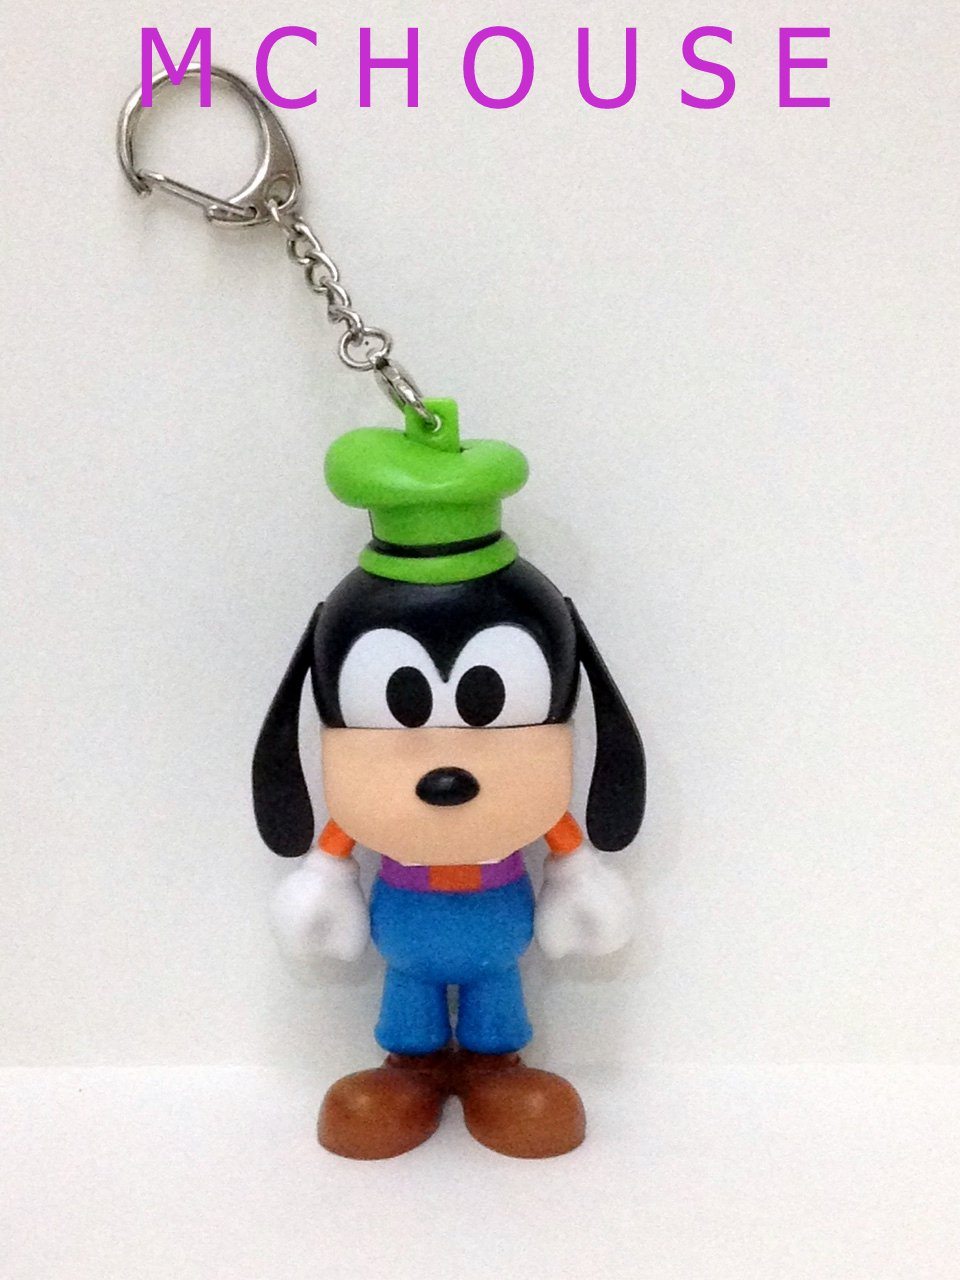 7-11 HK Disney 90th Mickey Mouse and Friends No.4 Goofy Keychain